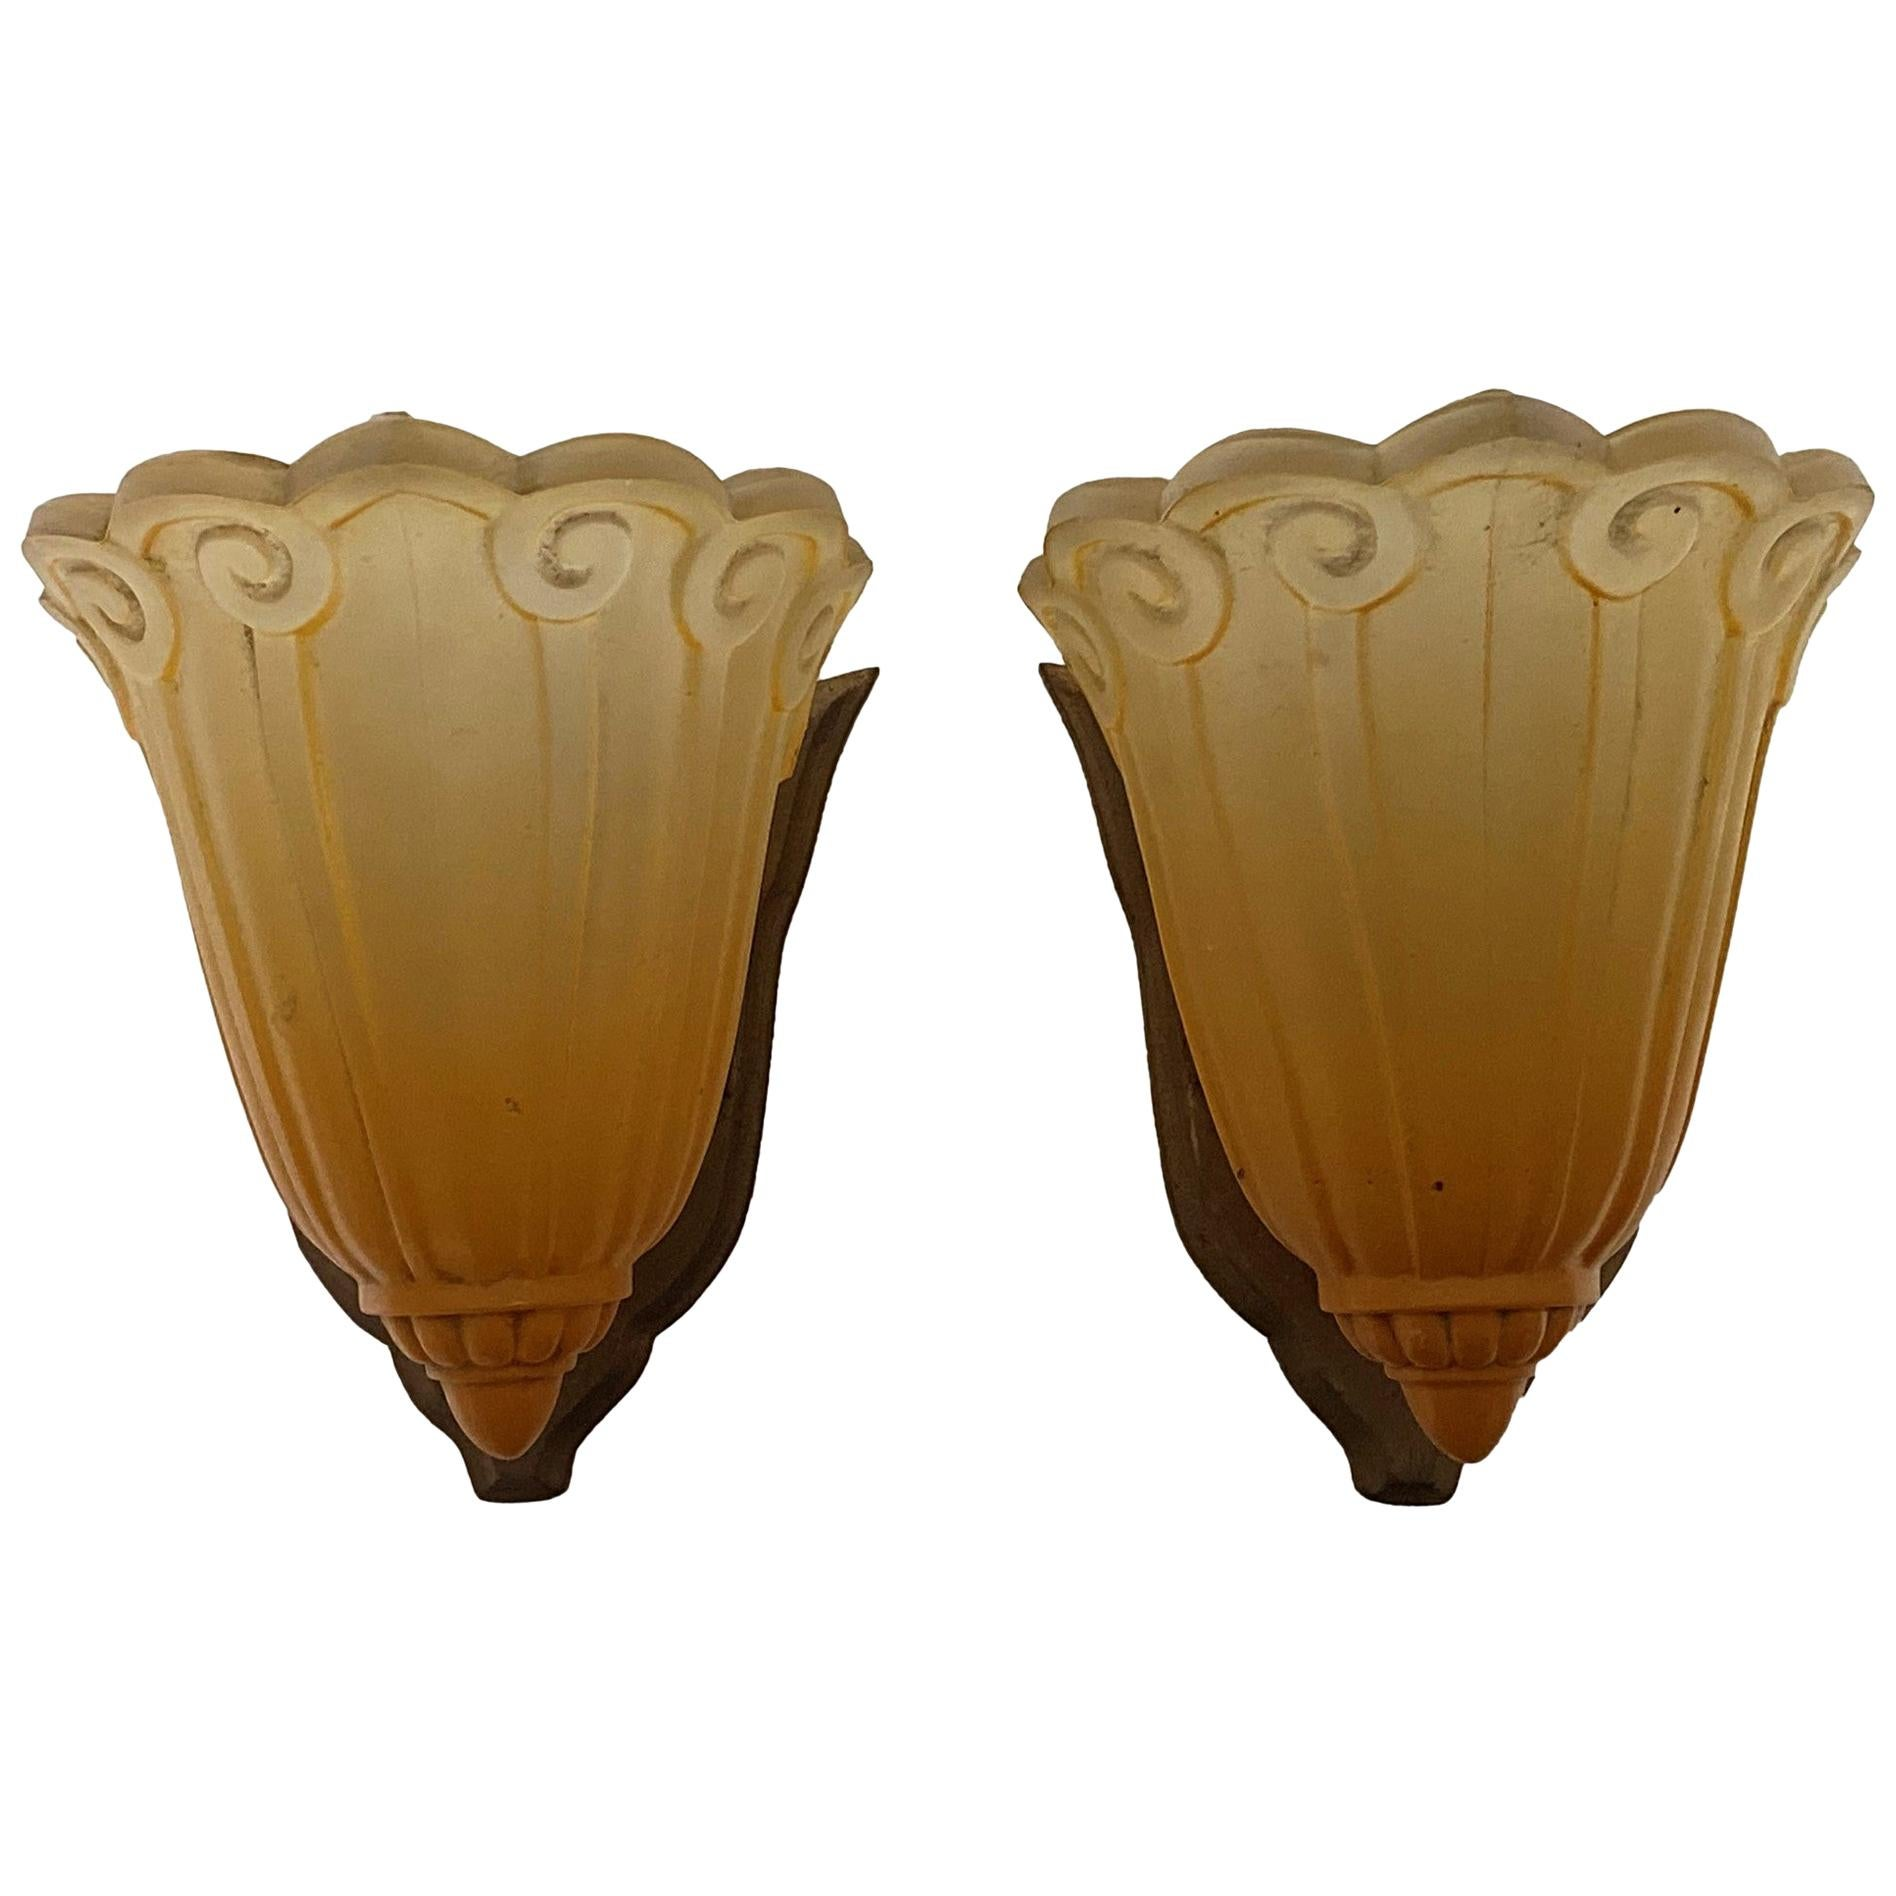 1930s Pair of Art Deco Wall Sconces, Amber Scalloped Glass